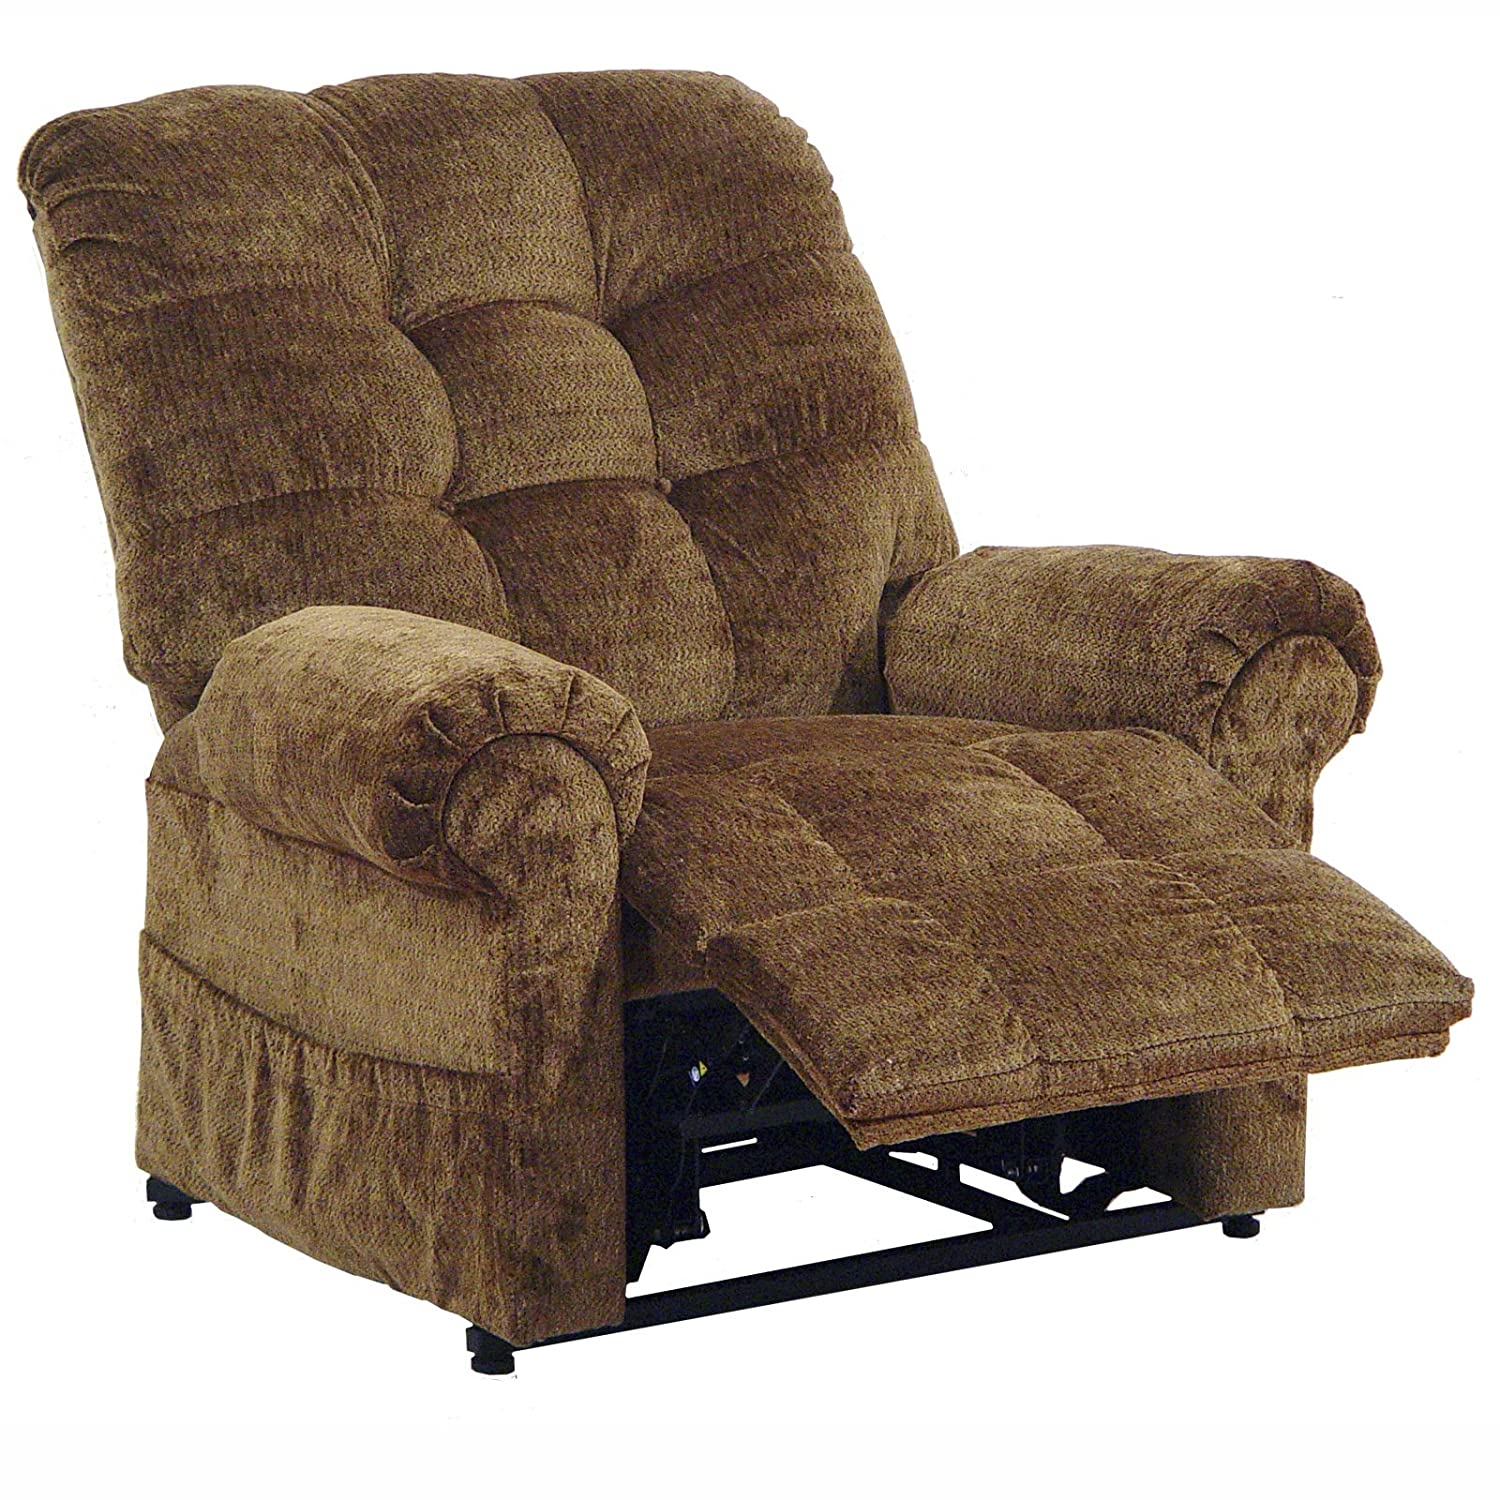 Lift Chairs Recliners Plus Size Recliners For Big Men Power Lift To Rockers